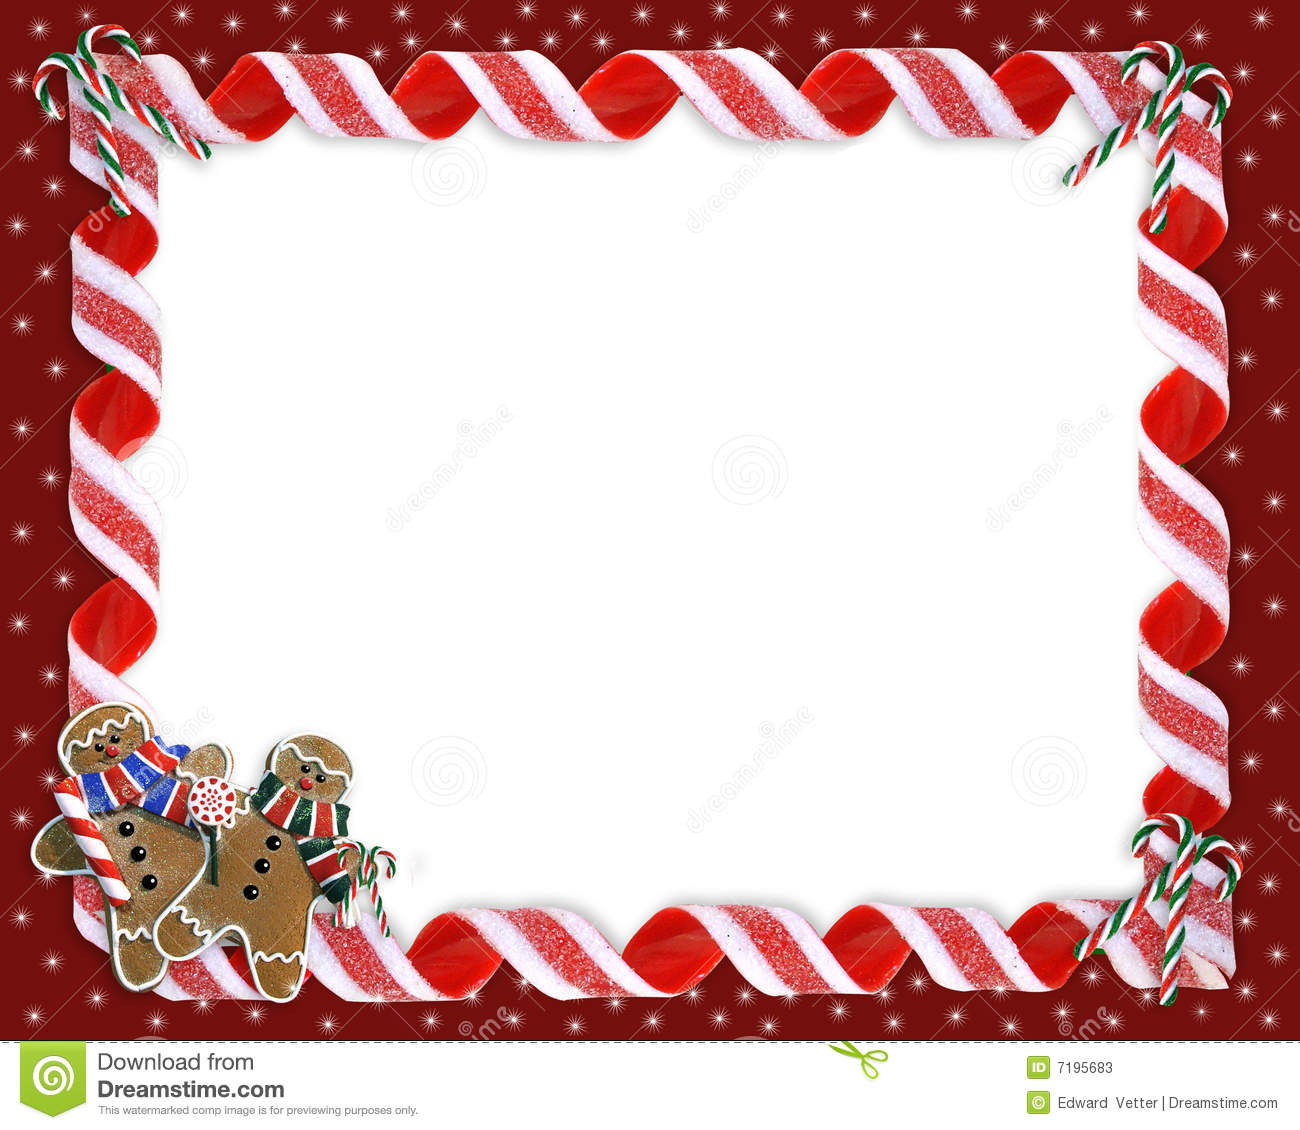 Cookies christmas border clipart suggest